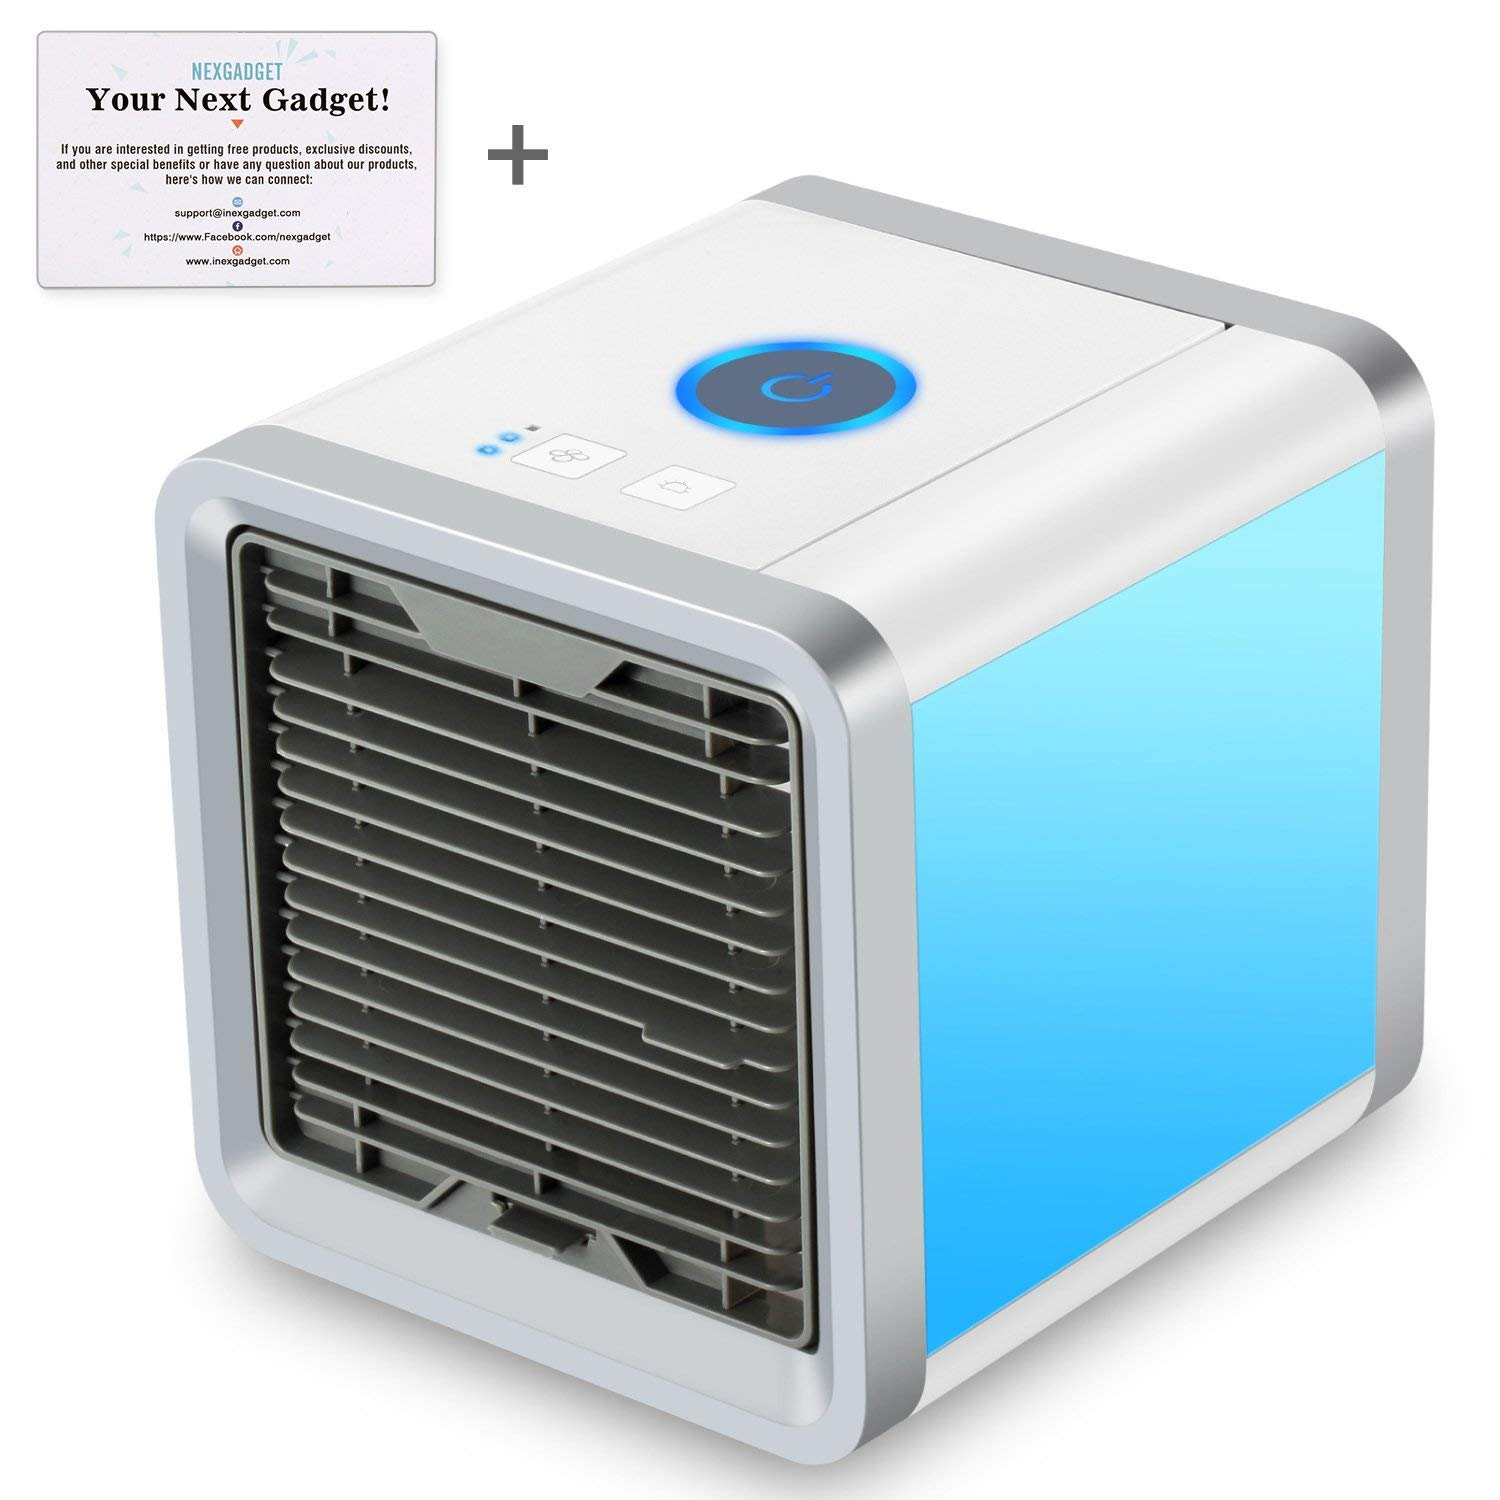 NEXGADGET Air Cool Portable Mini Desk Cooler, 3 in 1 Personal Space Air Cooler, Humidifier and Purifier, Desktop Air Conditioner Fan with 3 Speeds and 7 Colors LED Night Light